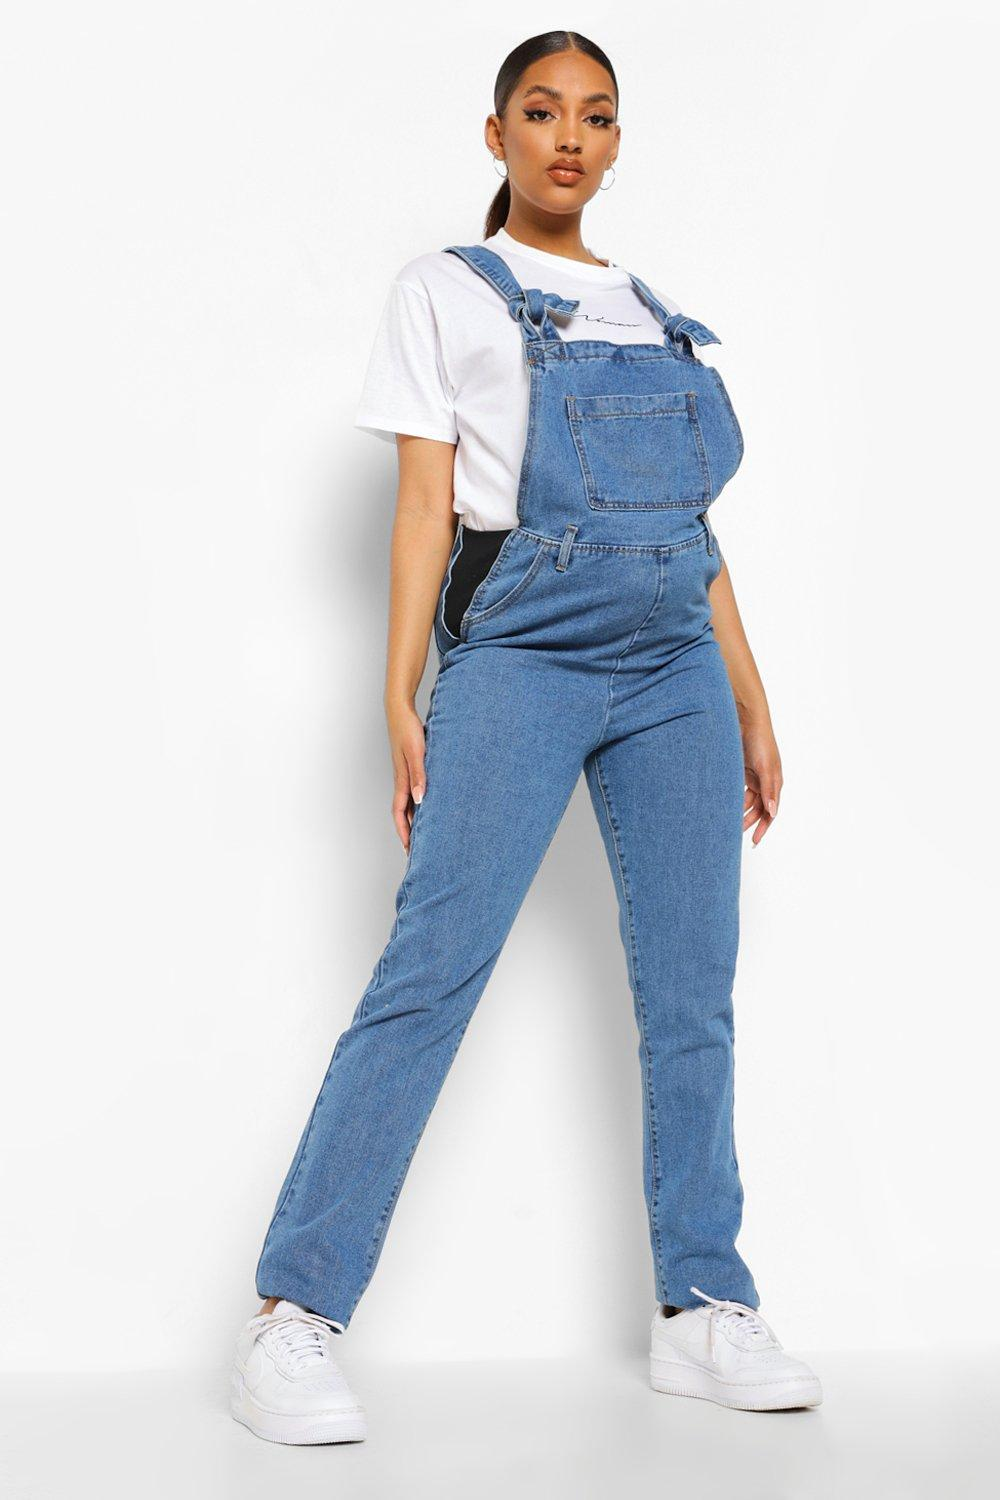 Vintage Maternity Clothes History Womens Maternity Denim Tie Strap Dungarees - Blue - 12 $25.00 AT vintagedancer.com